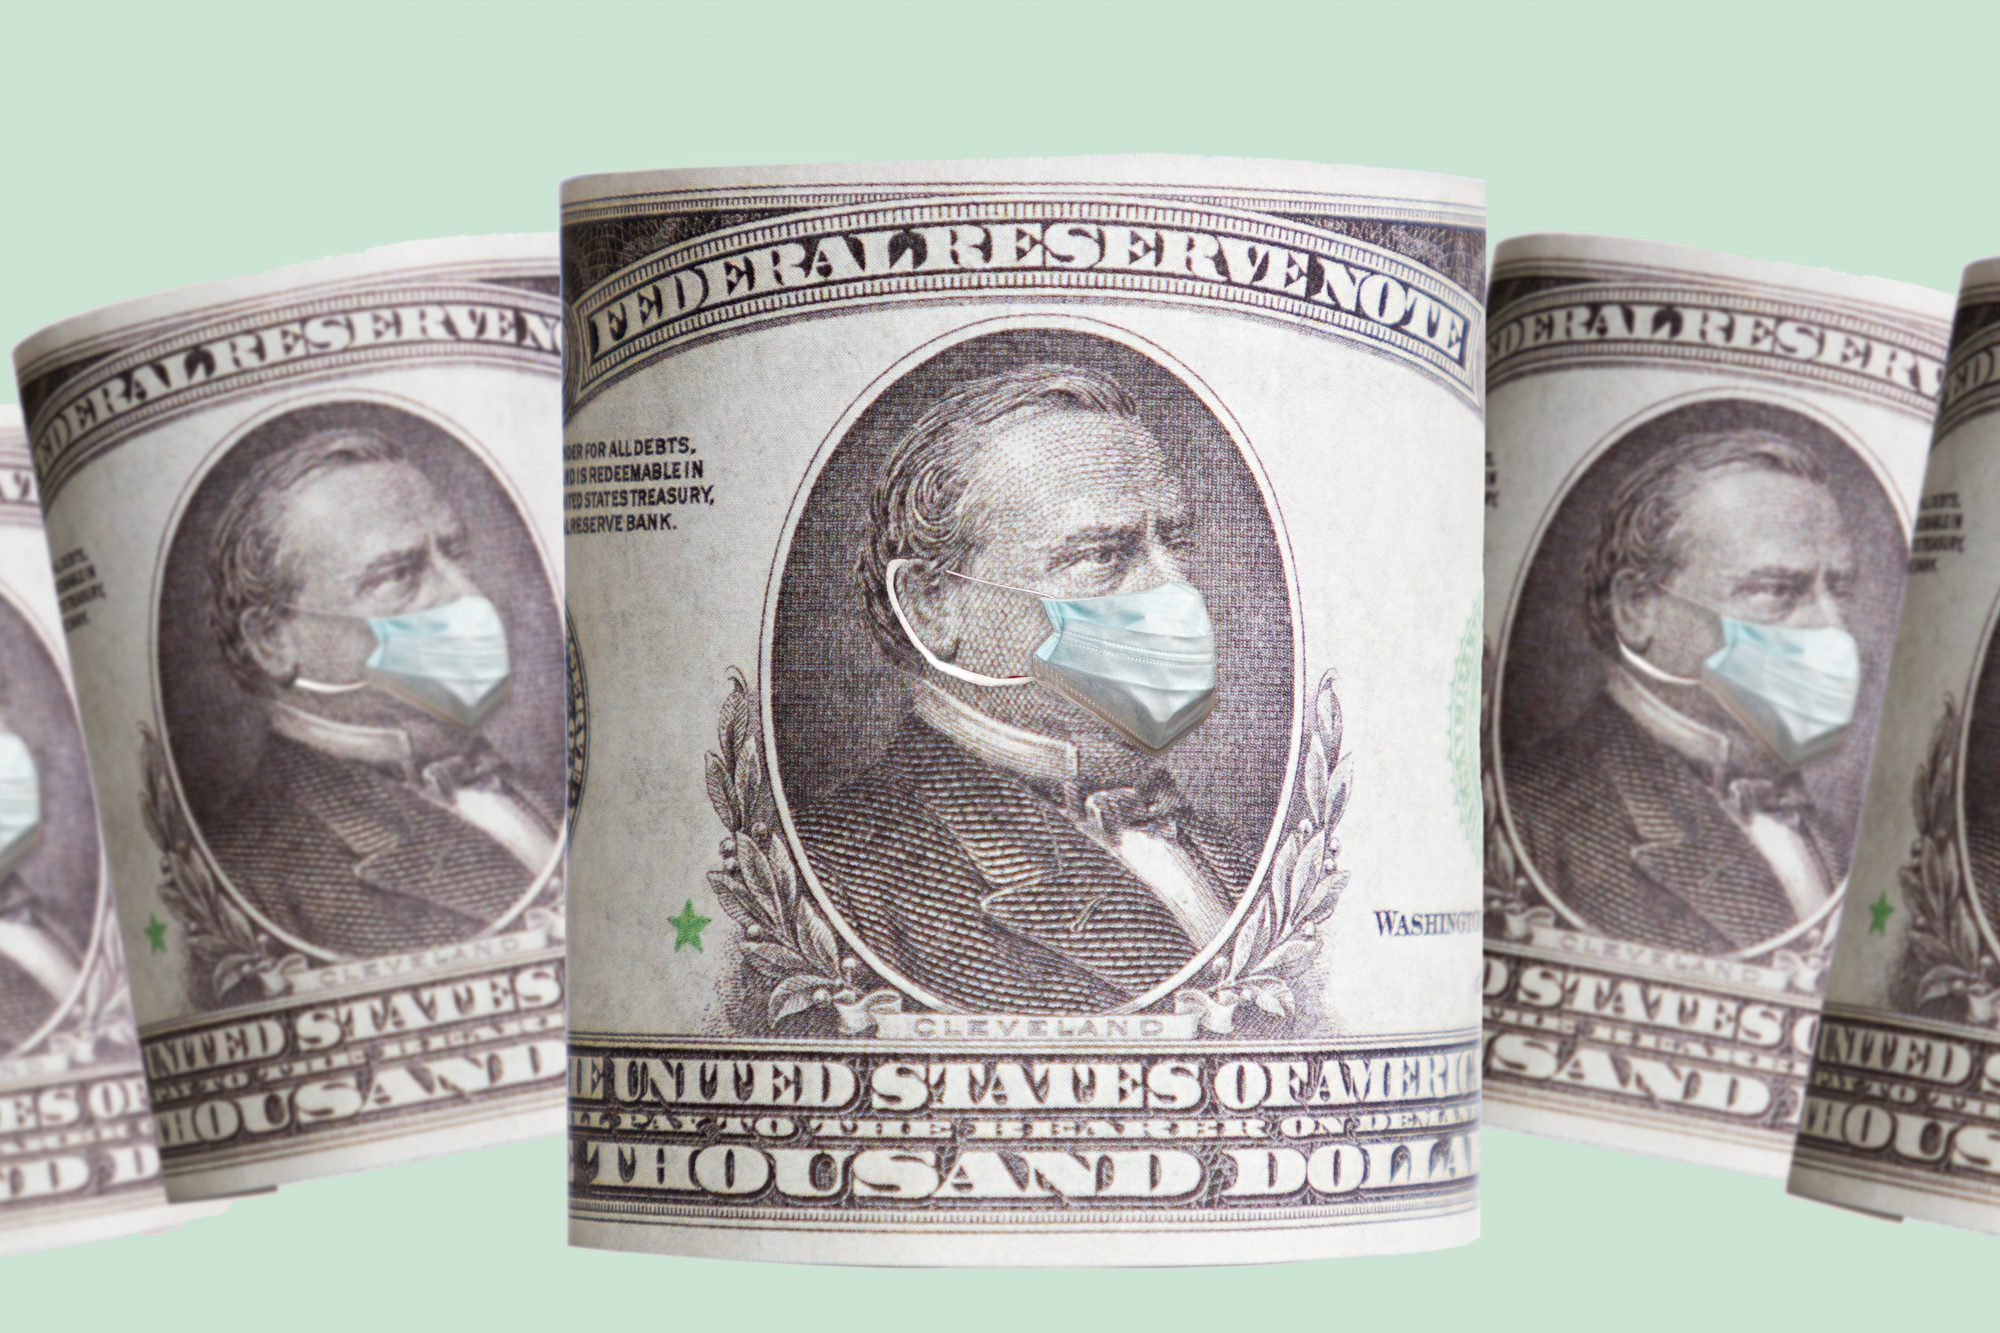 Stimulus check scams - how to protect your finances and information (dollar bill with mask)